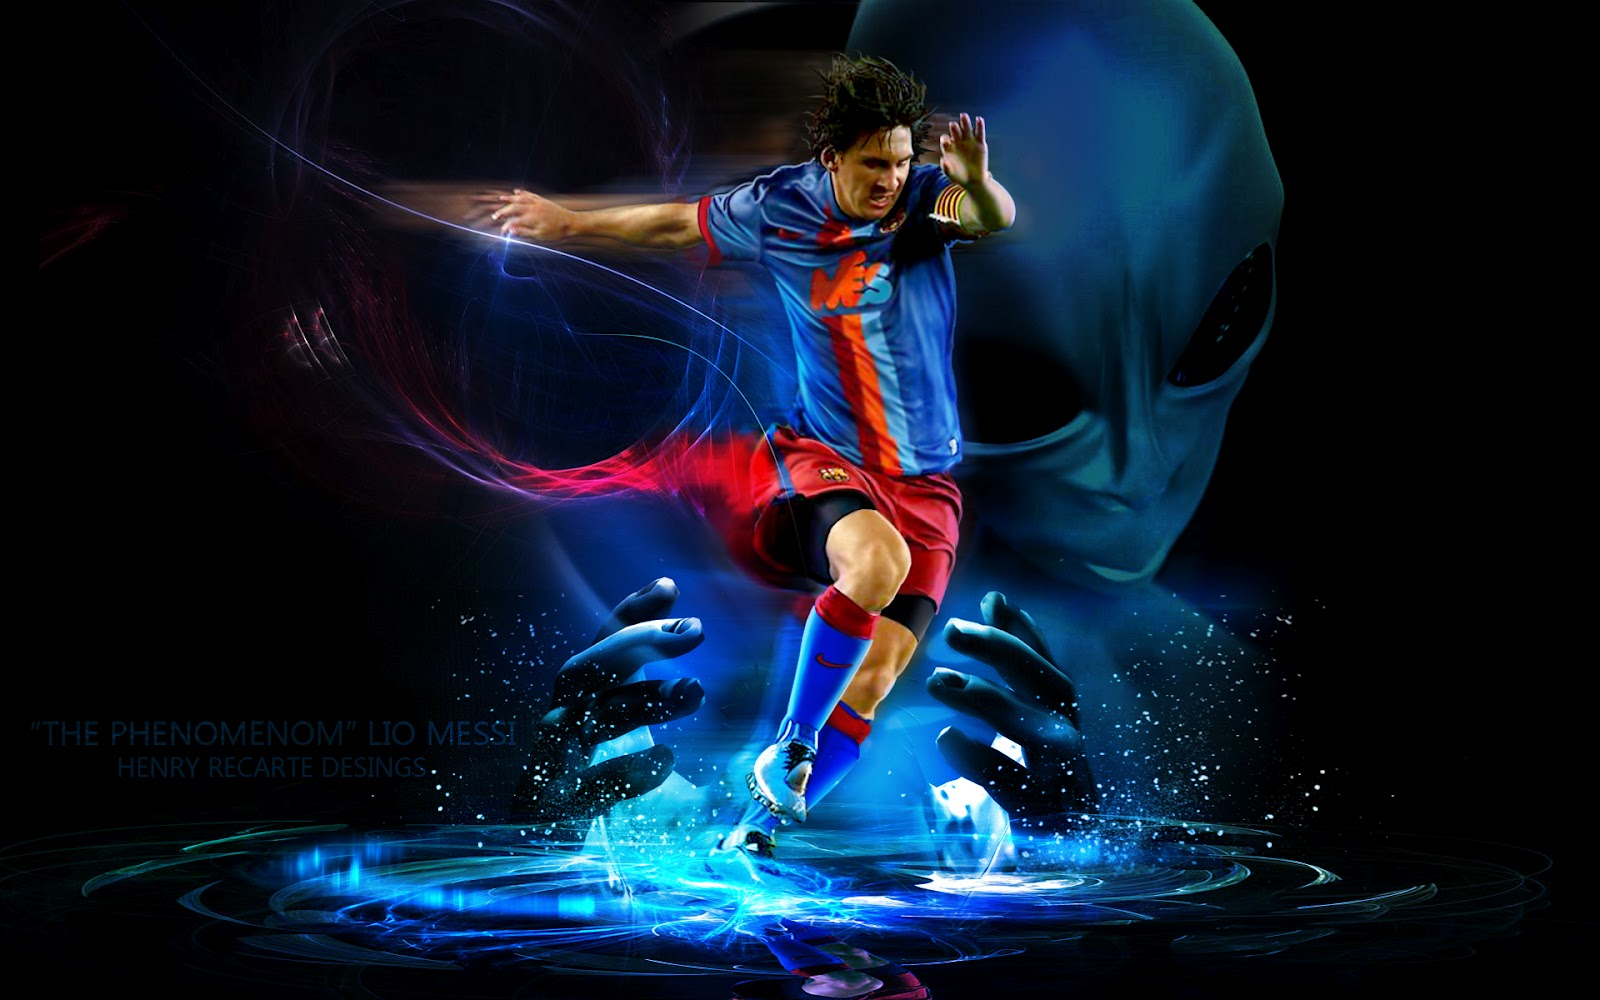 lionel messi wallpapers 2012 1024x640 lionel messi 2012 hd wallpapers 1600x1000